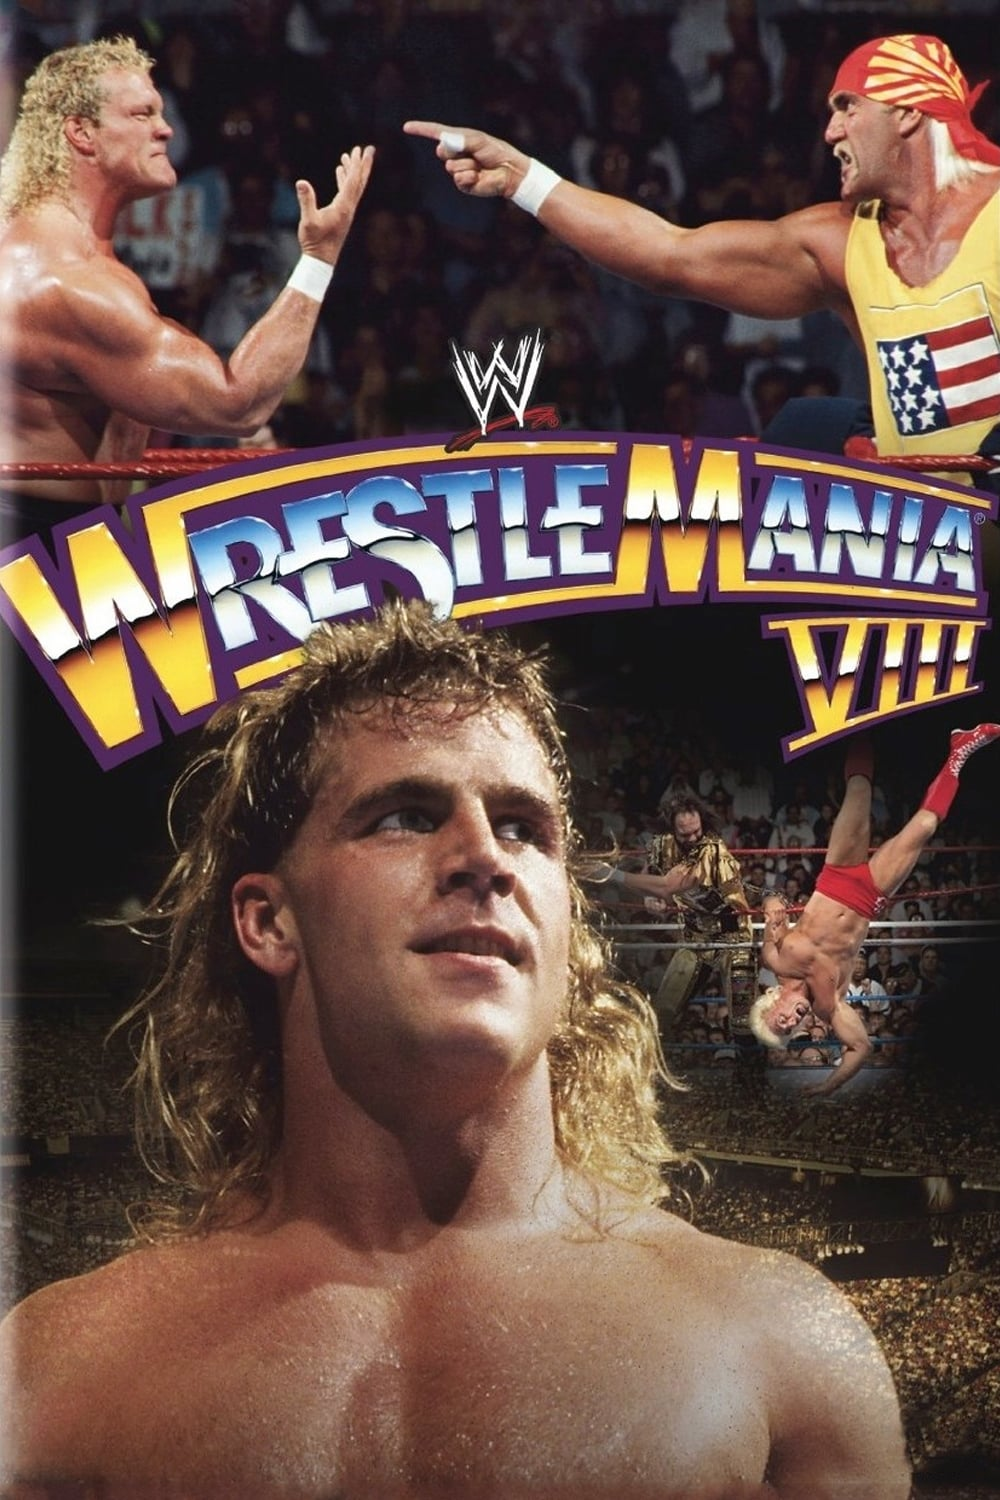 WWE WrestleMania VIII